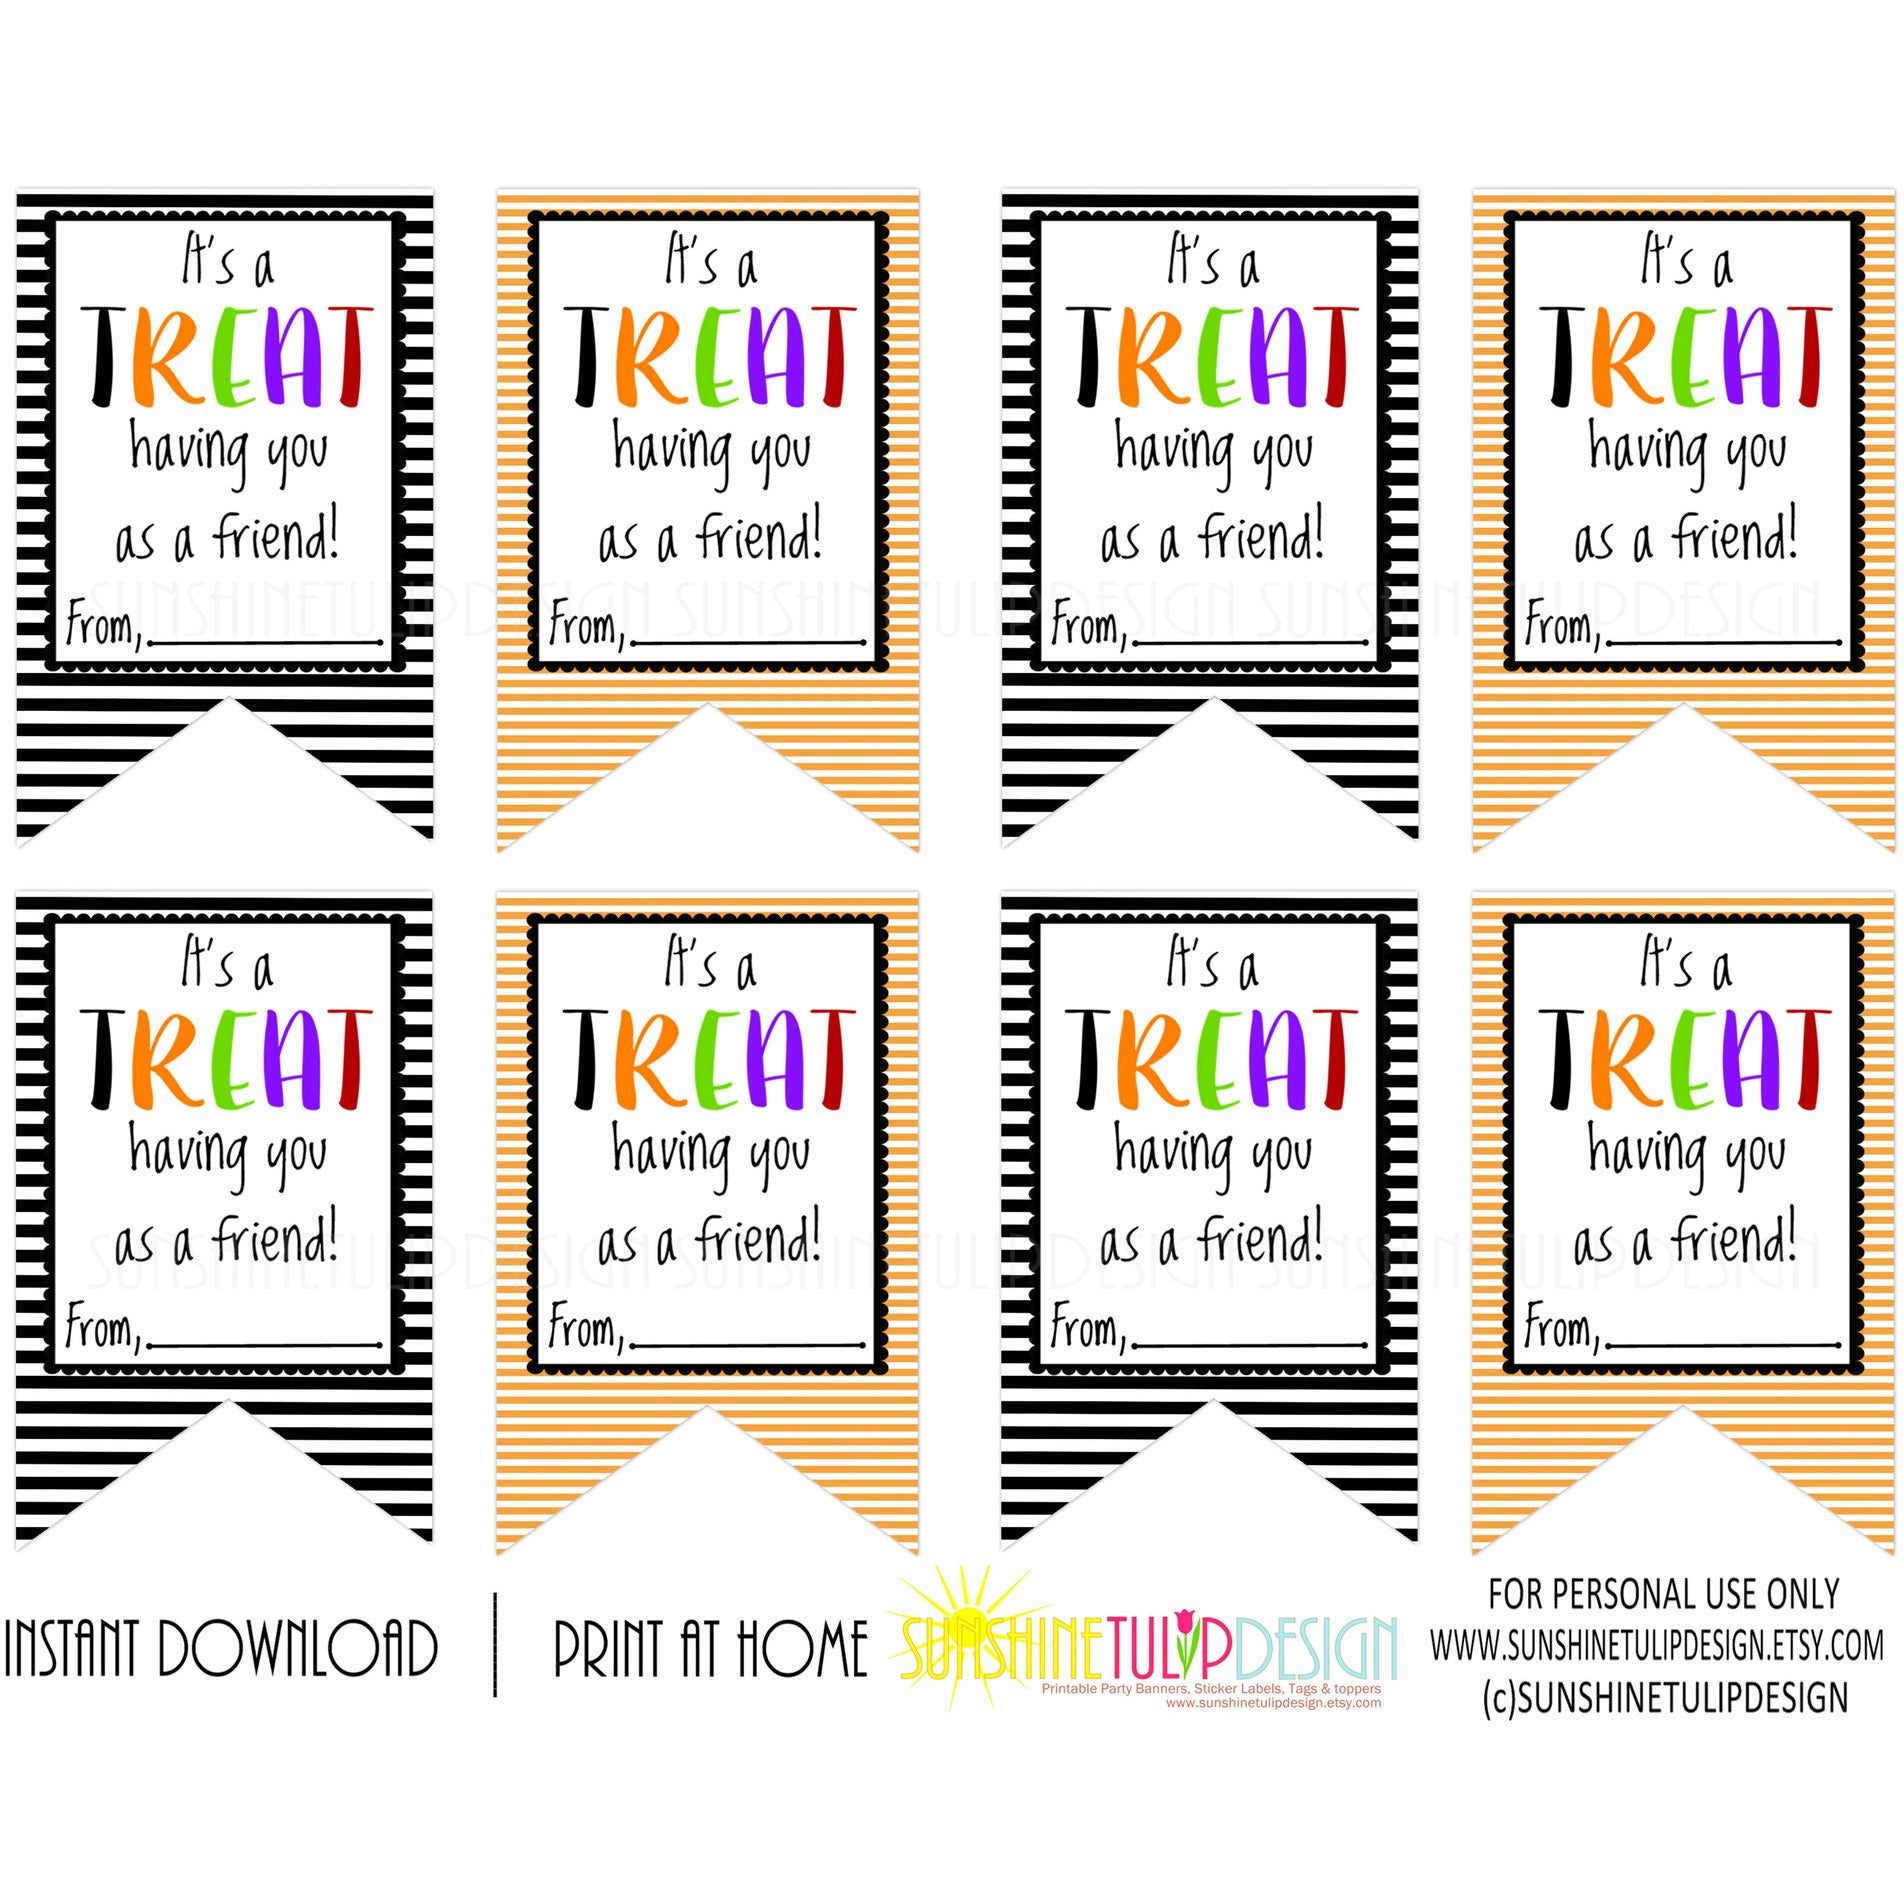 graphic about Halloween Gift Tags Printable titled Printable Halloween Reward Tags, Its a Take care of Feeding on By yourself as a Close friend, Halloween Reward Tags via SUNSHINETULIPDESIGN